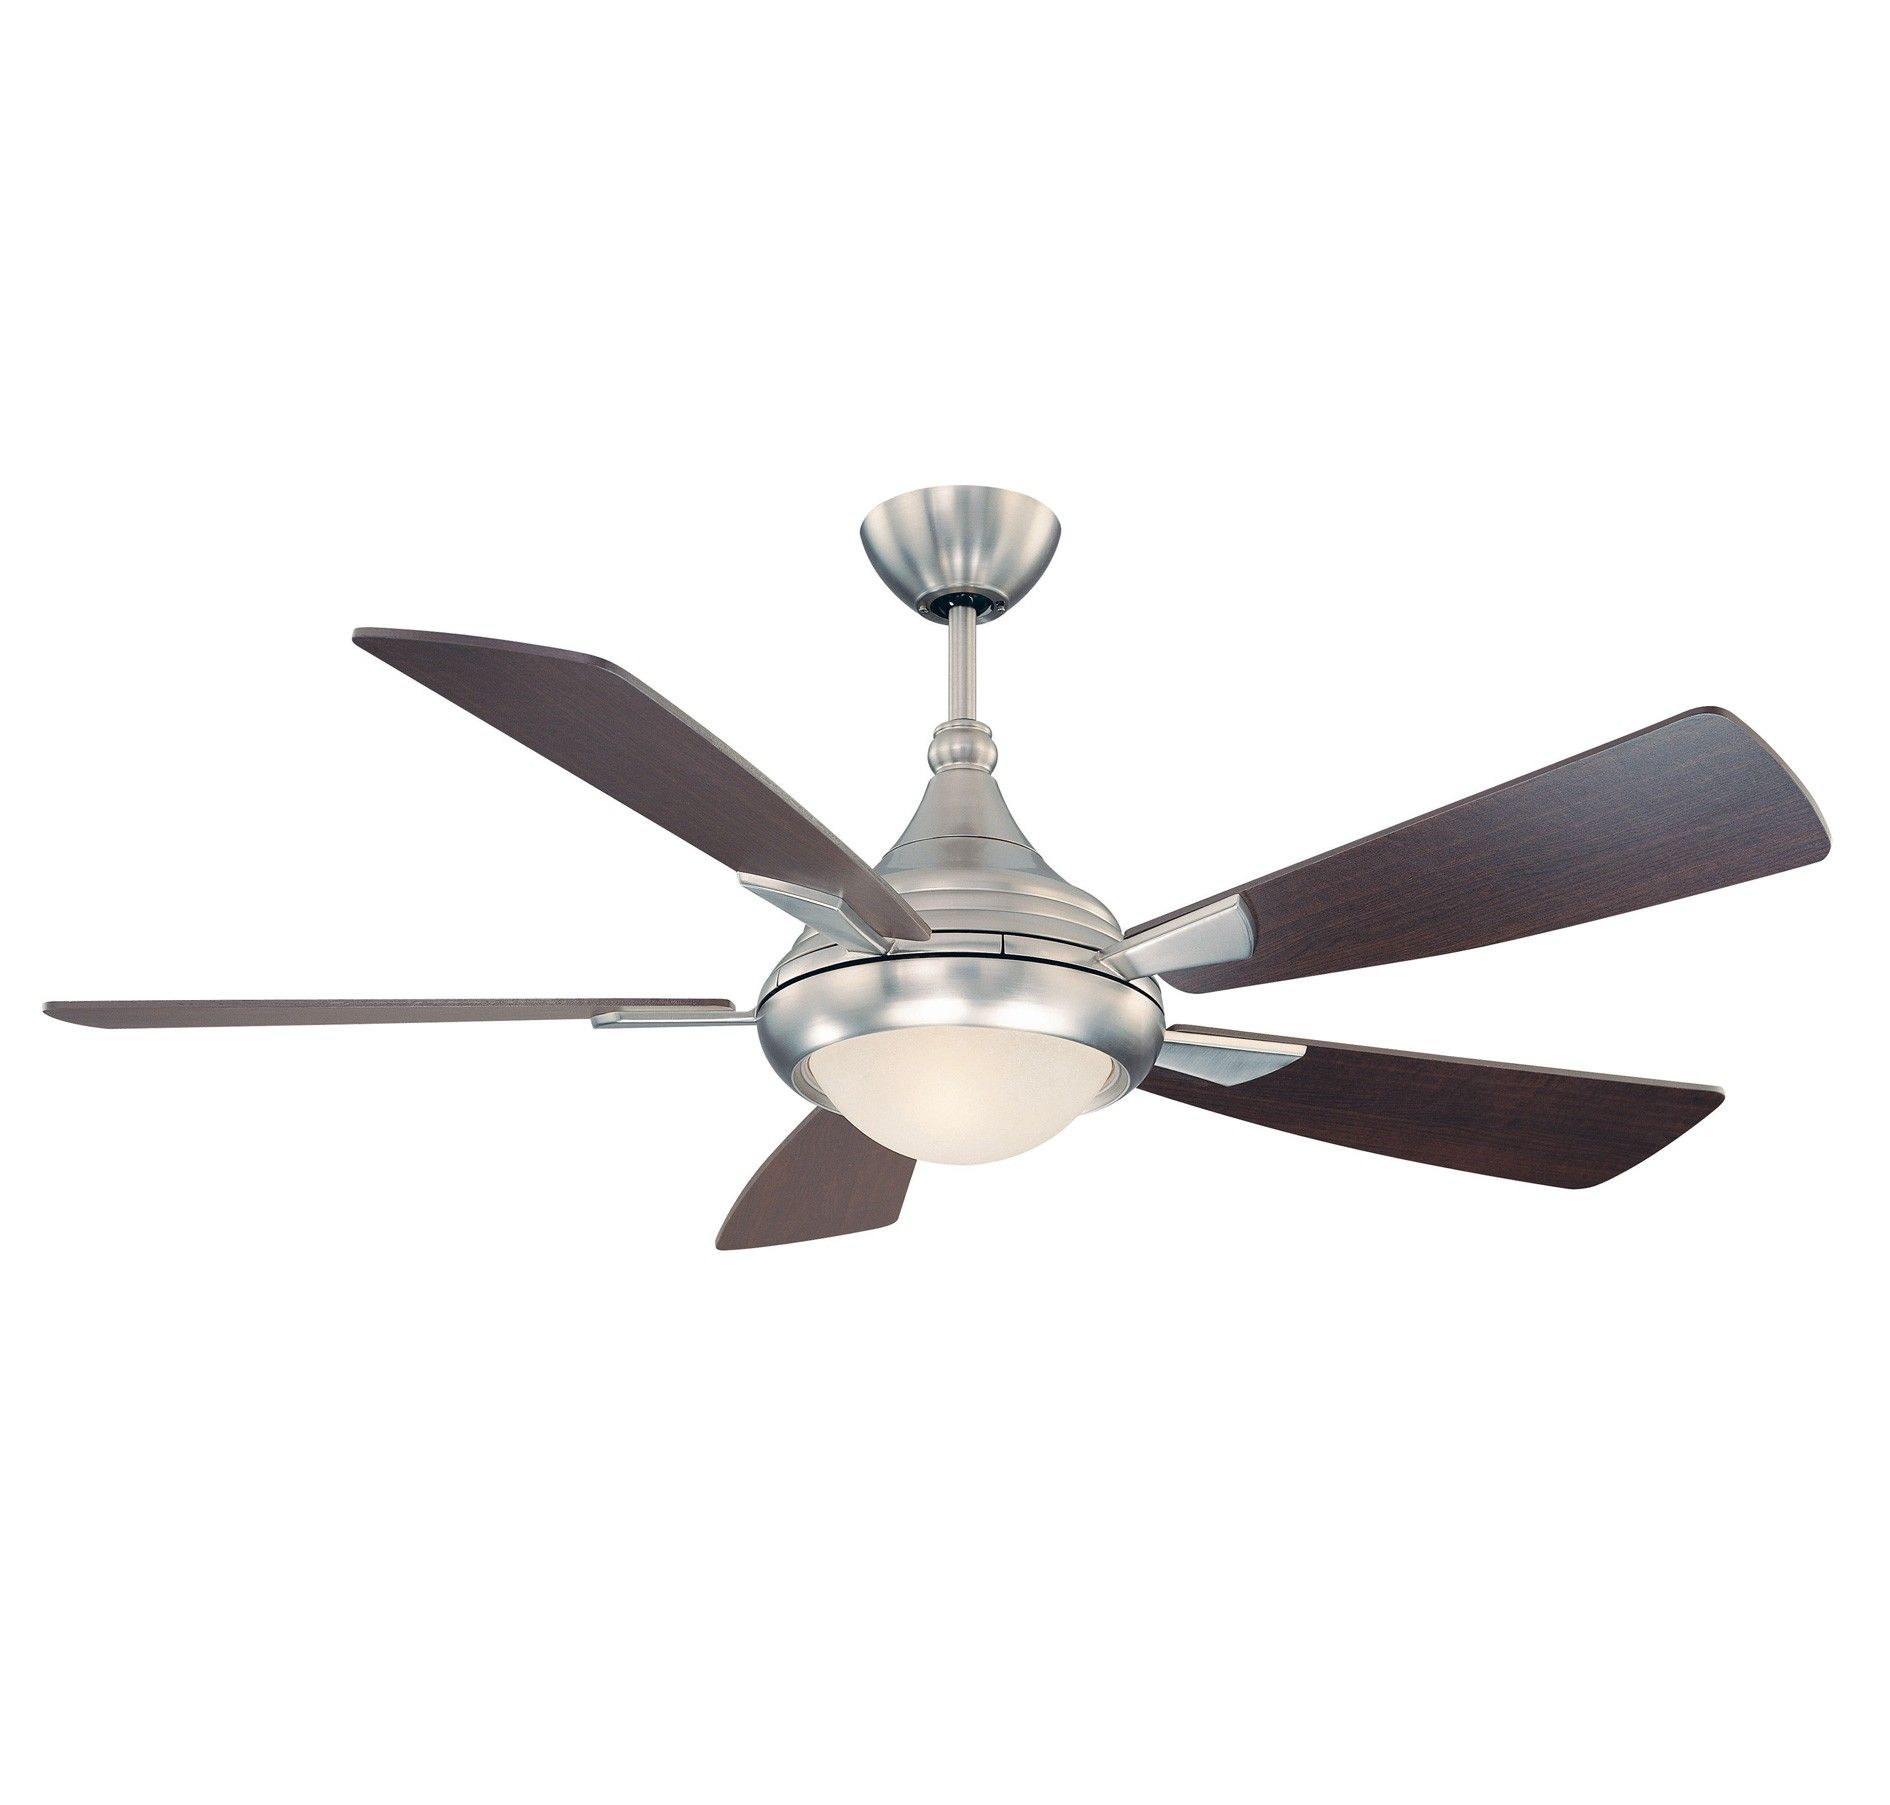 "Savoy House Zephyr 54"" Indoor Ceiling Fan in Satin Nickel"